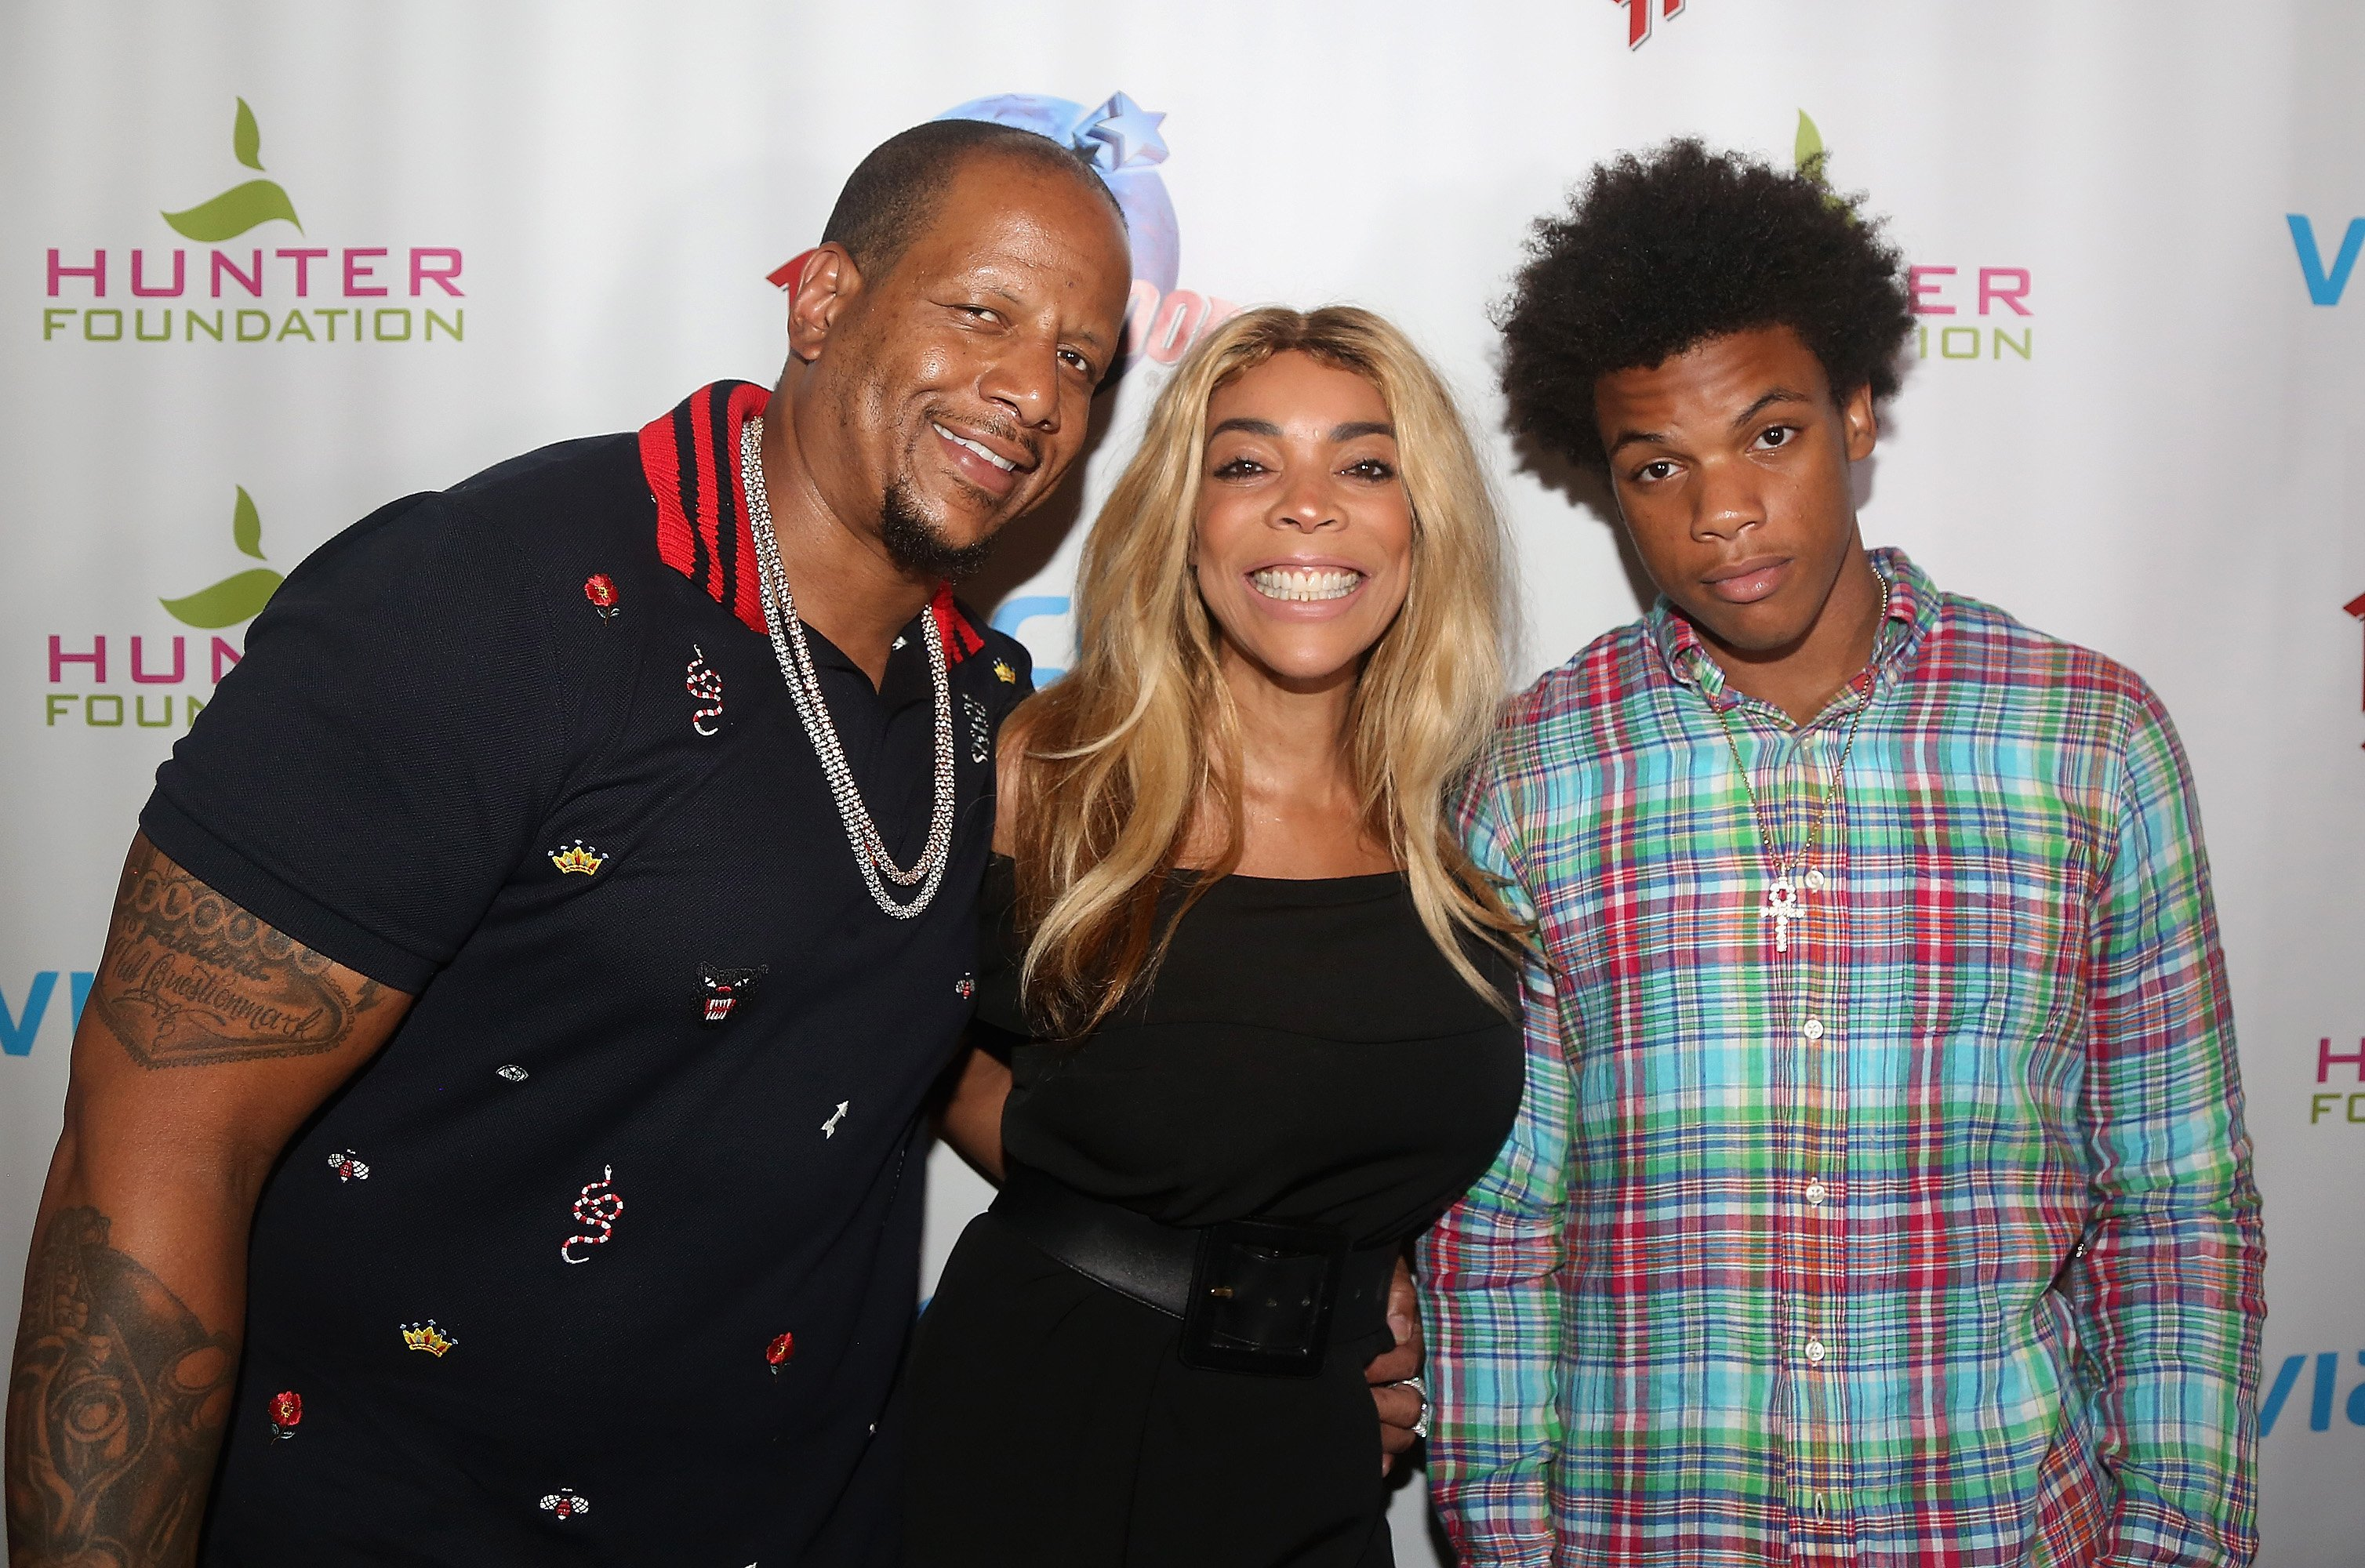 (Happier Times) Kevin Hunter, Wendy Williams & Kevin Hunter Jr. in New York City on July 11, 2017 | Photo: Getty Images